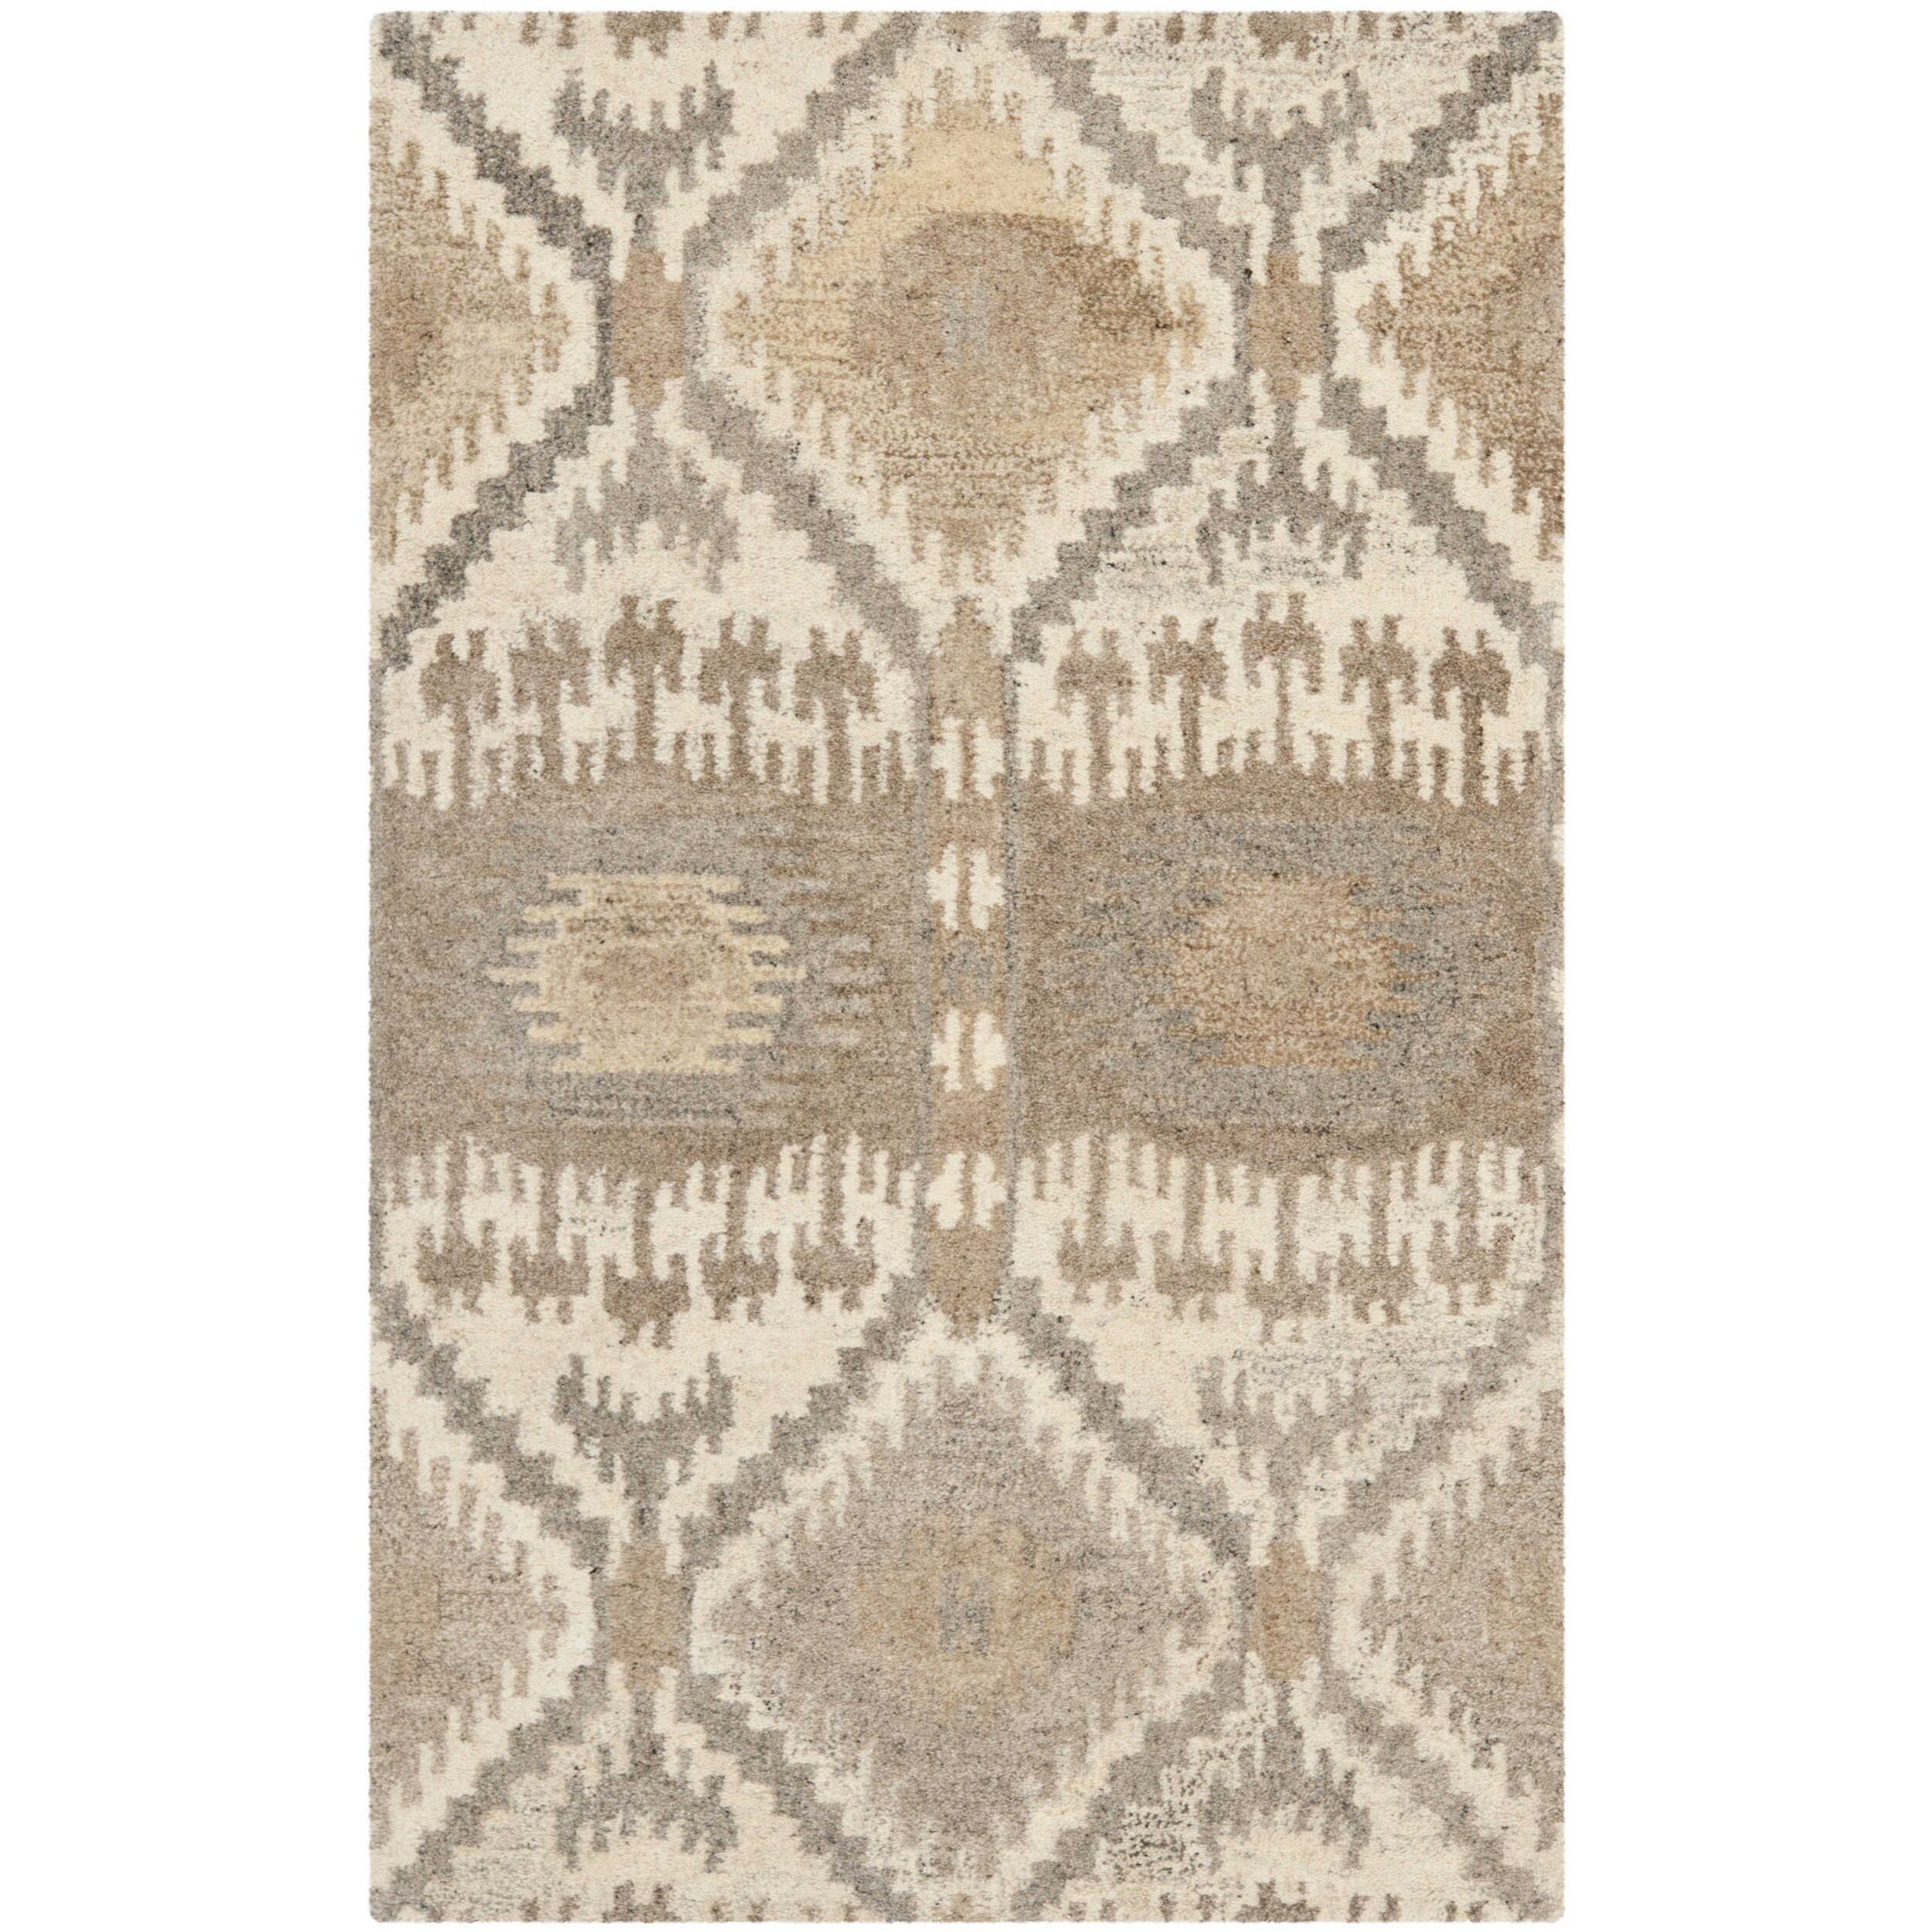 Dog Eating Wool Rug: Safavieh Wyndham Brown Area Rug & Reviews